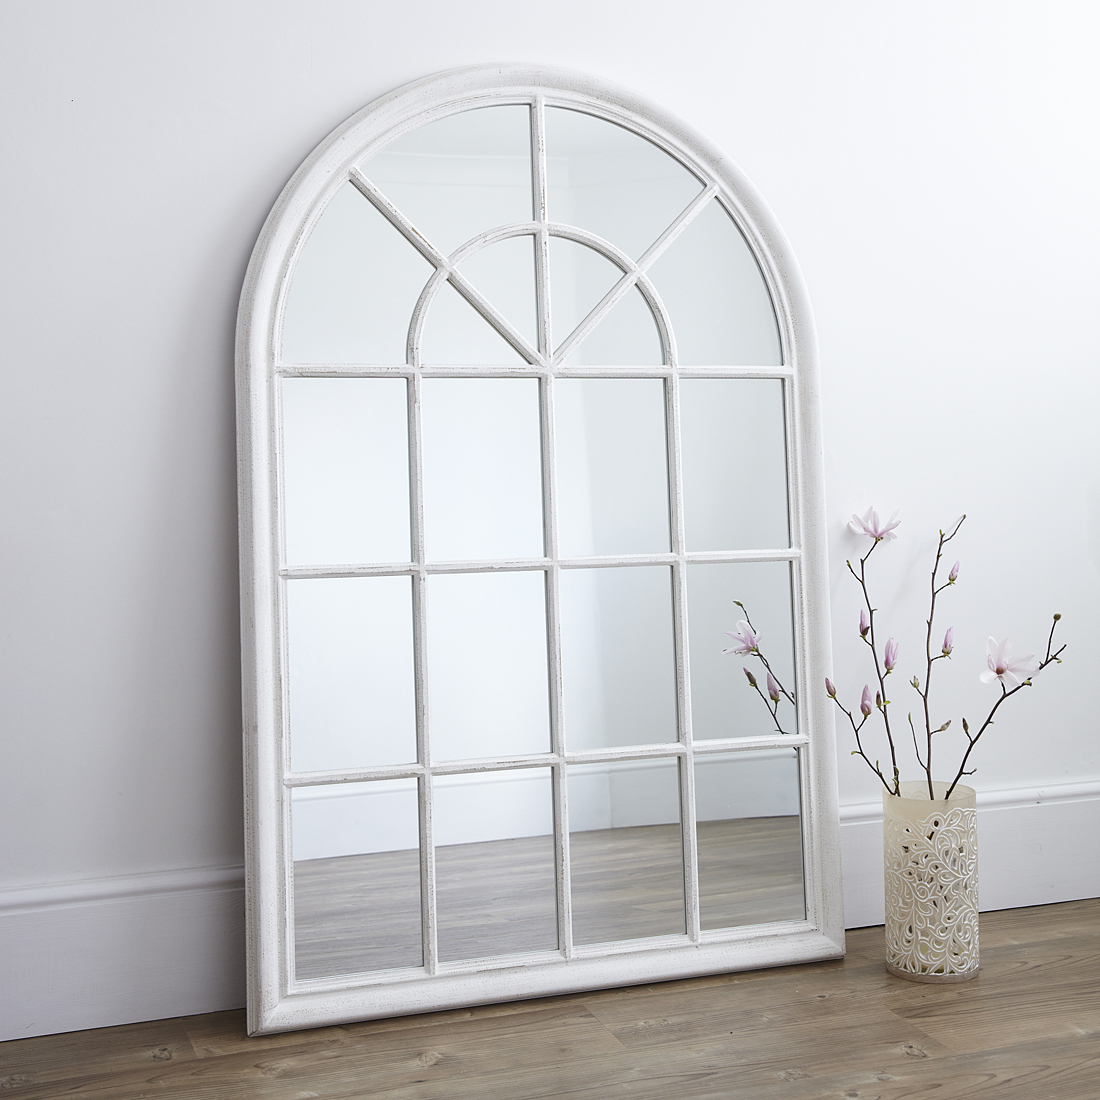 Fashionable Standard Wall Mirrors For White Arched Window Wall Mirror (View 5 of 20)